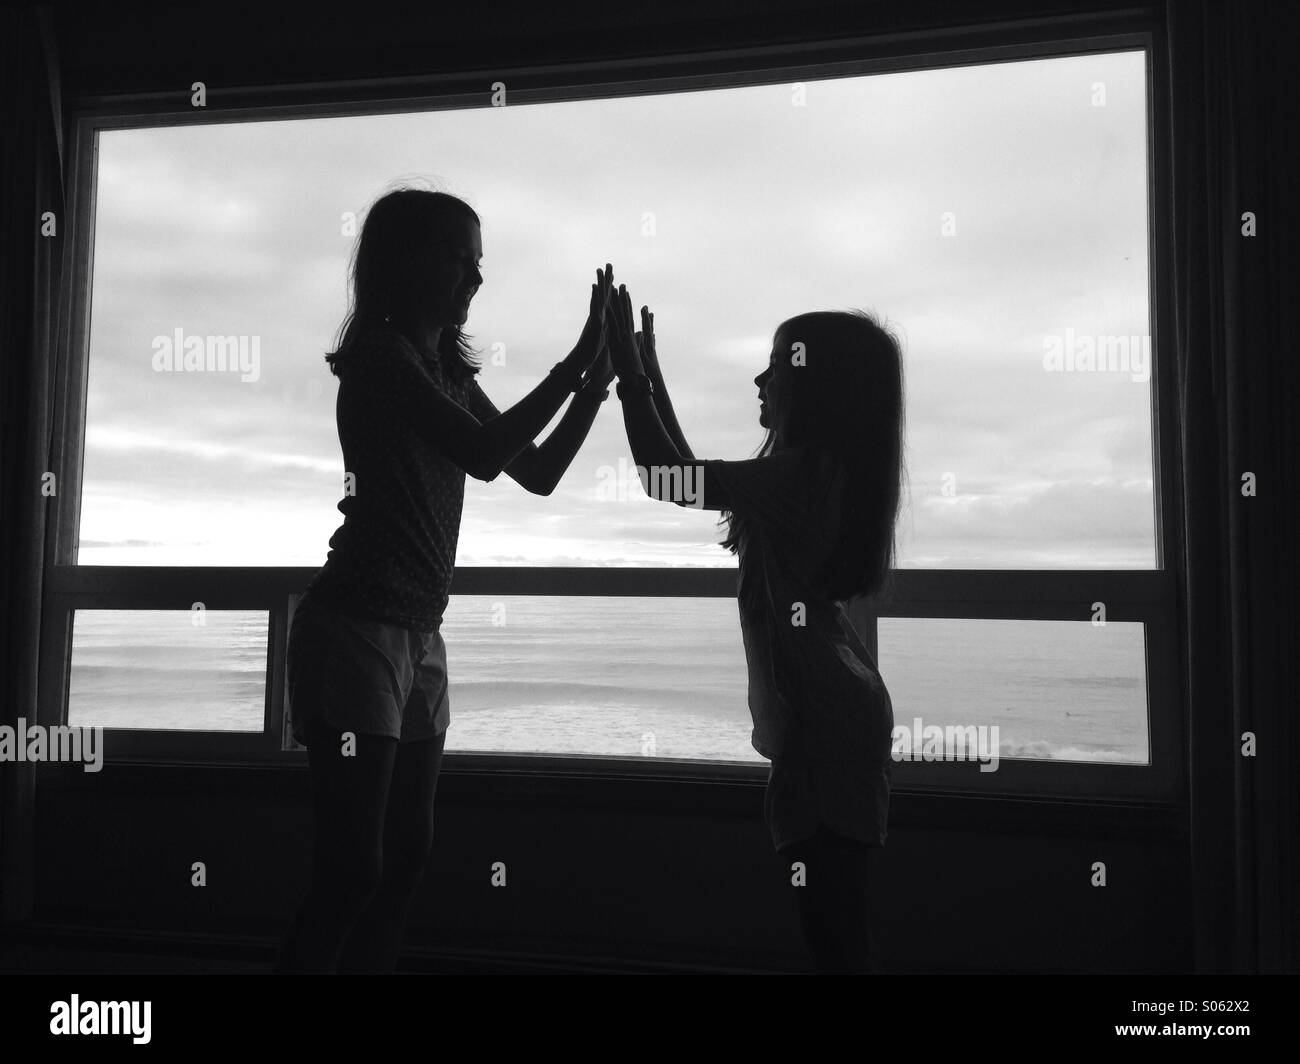 Two girls in silhouette high five in front of a picture window. The image is black and white. - Stock Image